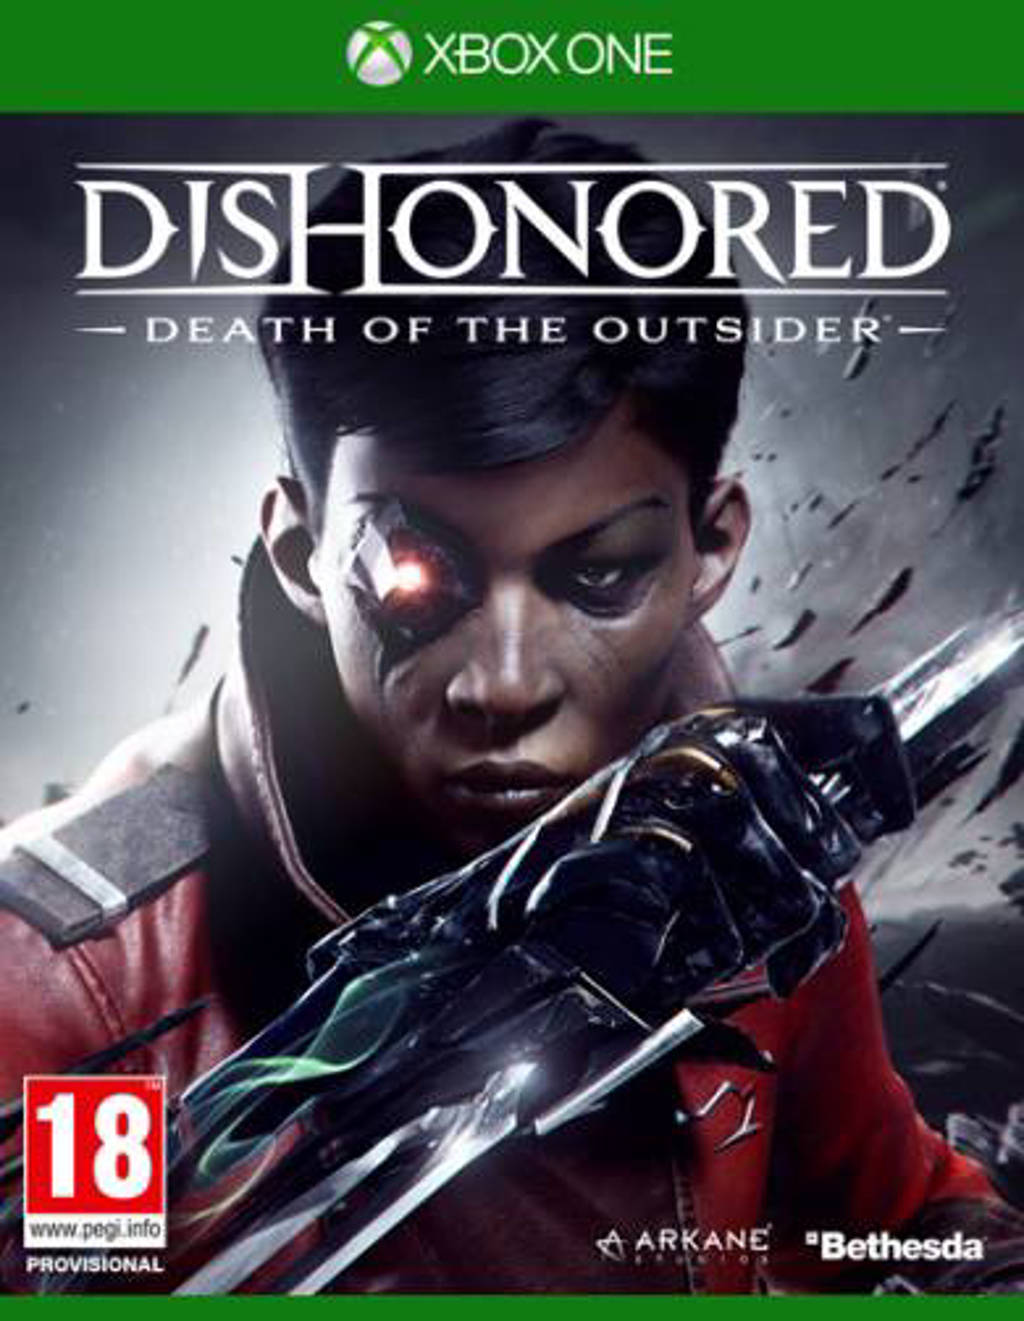 Dishonored - Death of the outsider (Xbox One)